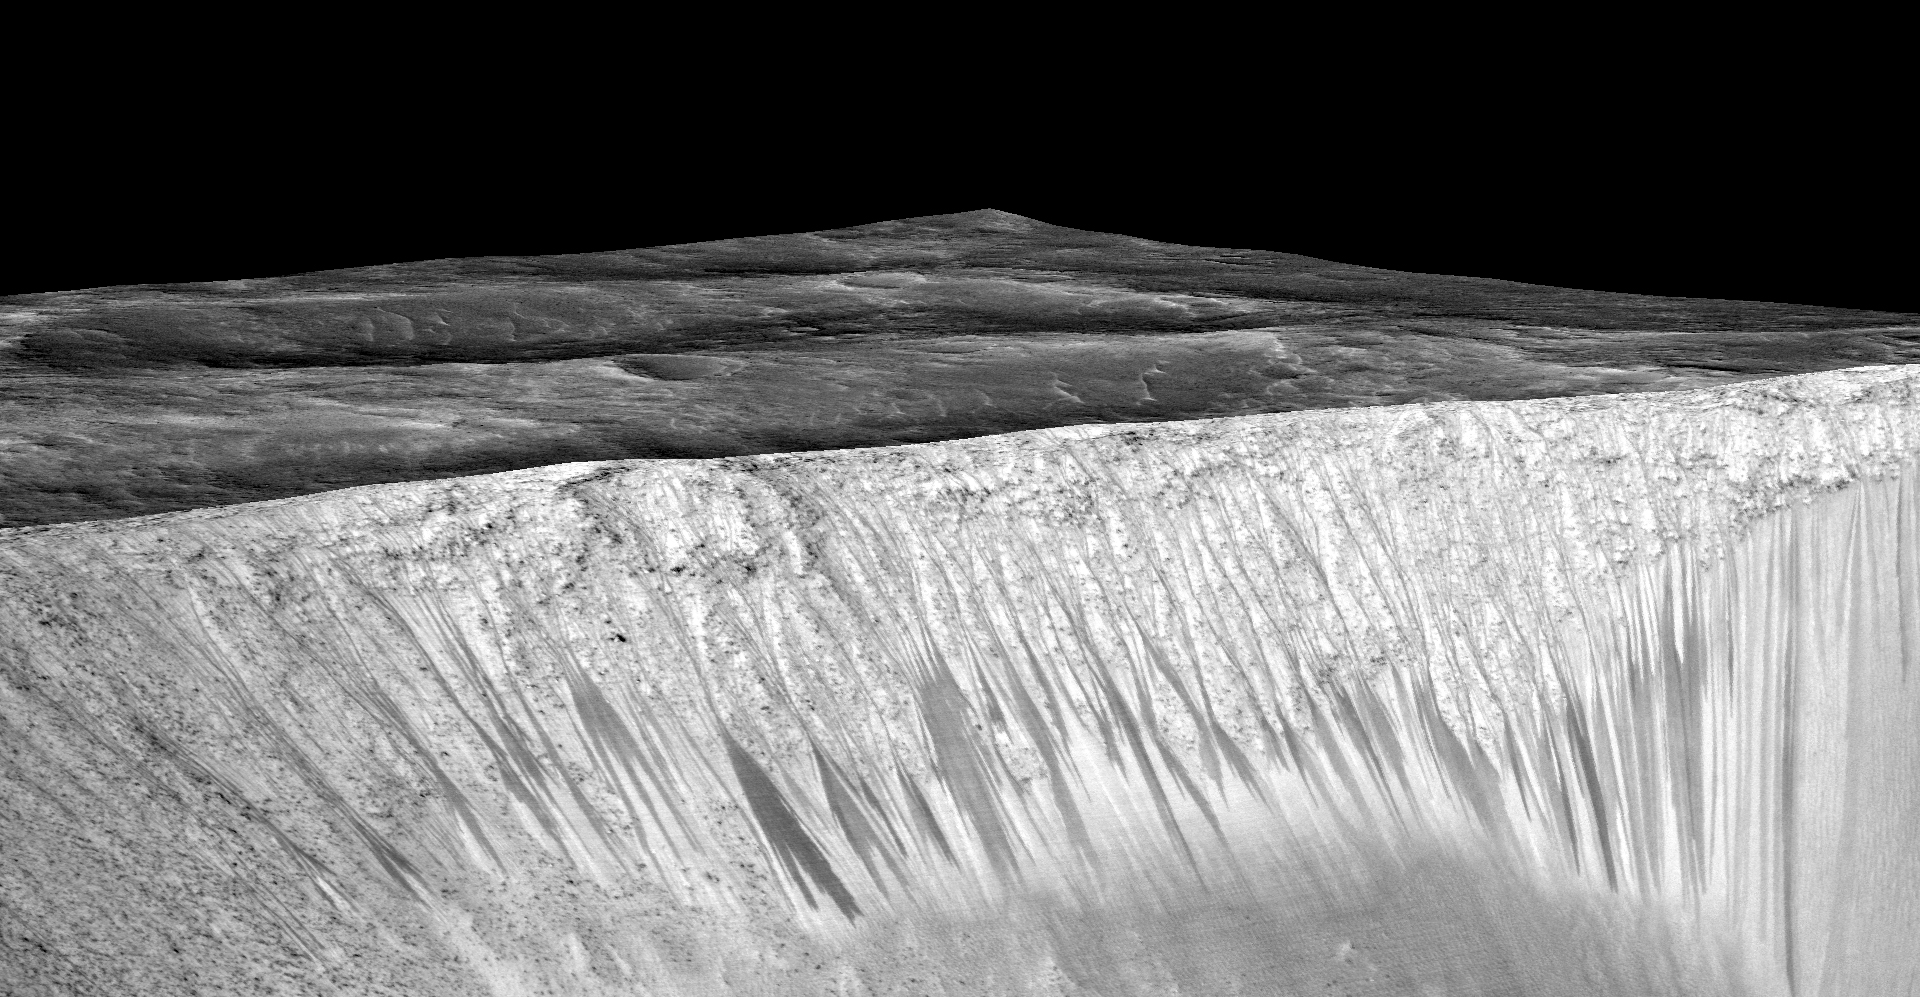 In this handout provided by NASA's Mars Reconnaissance Orbiter, dark, narrow streaks on the slopes of Garni Crater are inferred to be formed by seasonal flow of water on surface of present-day Mars